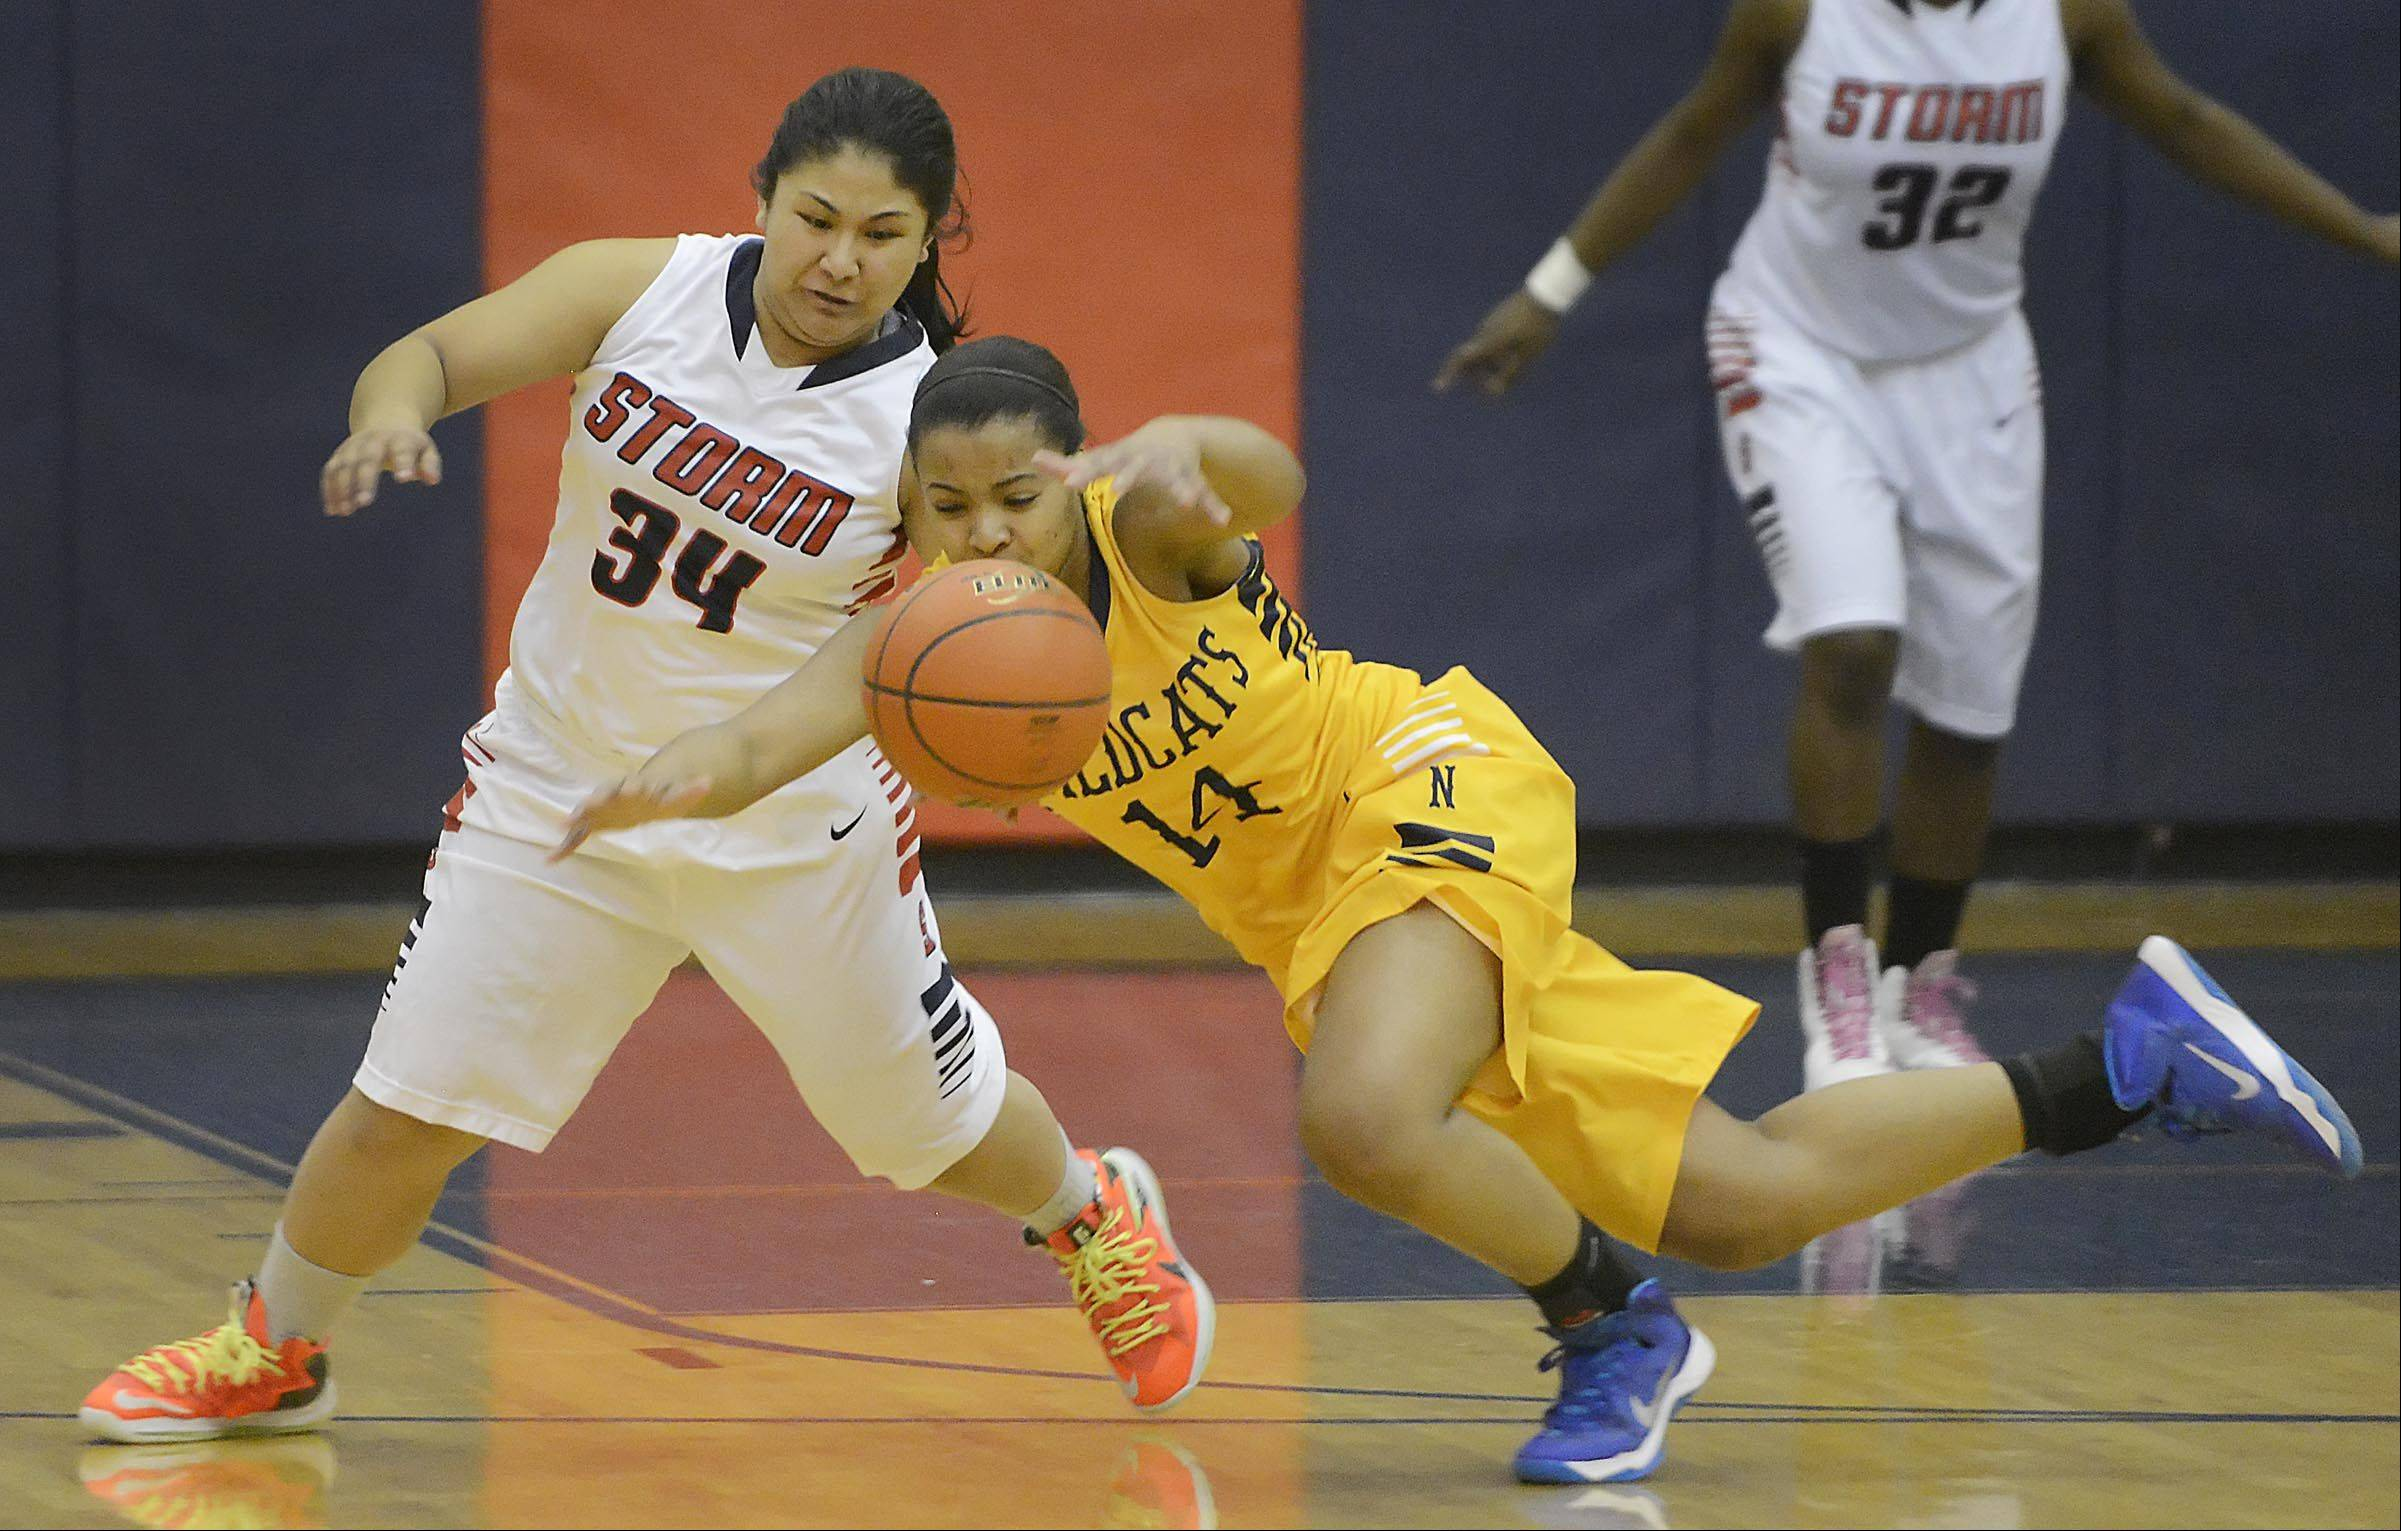 Neuqua Valley's Najee Smith falls as South Elgin's Nadia Yang defends her Monday in South Elgin.